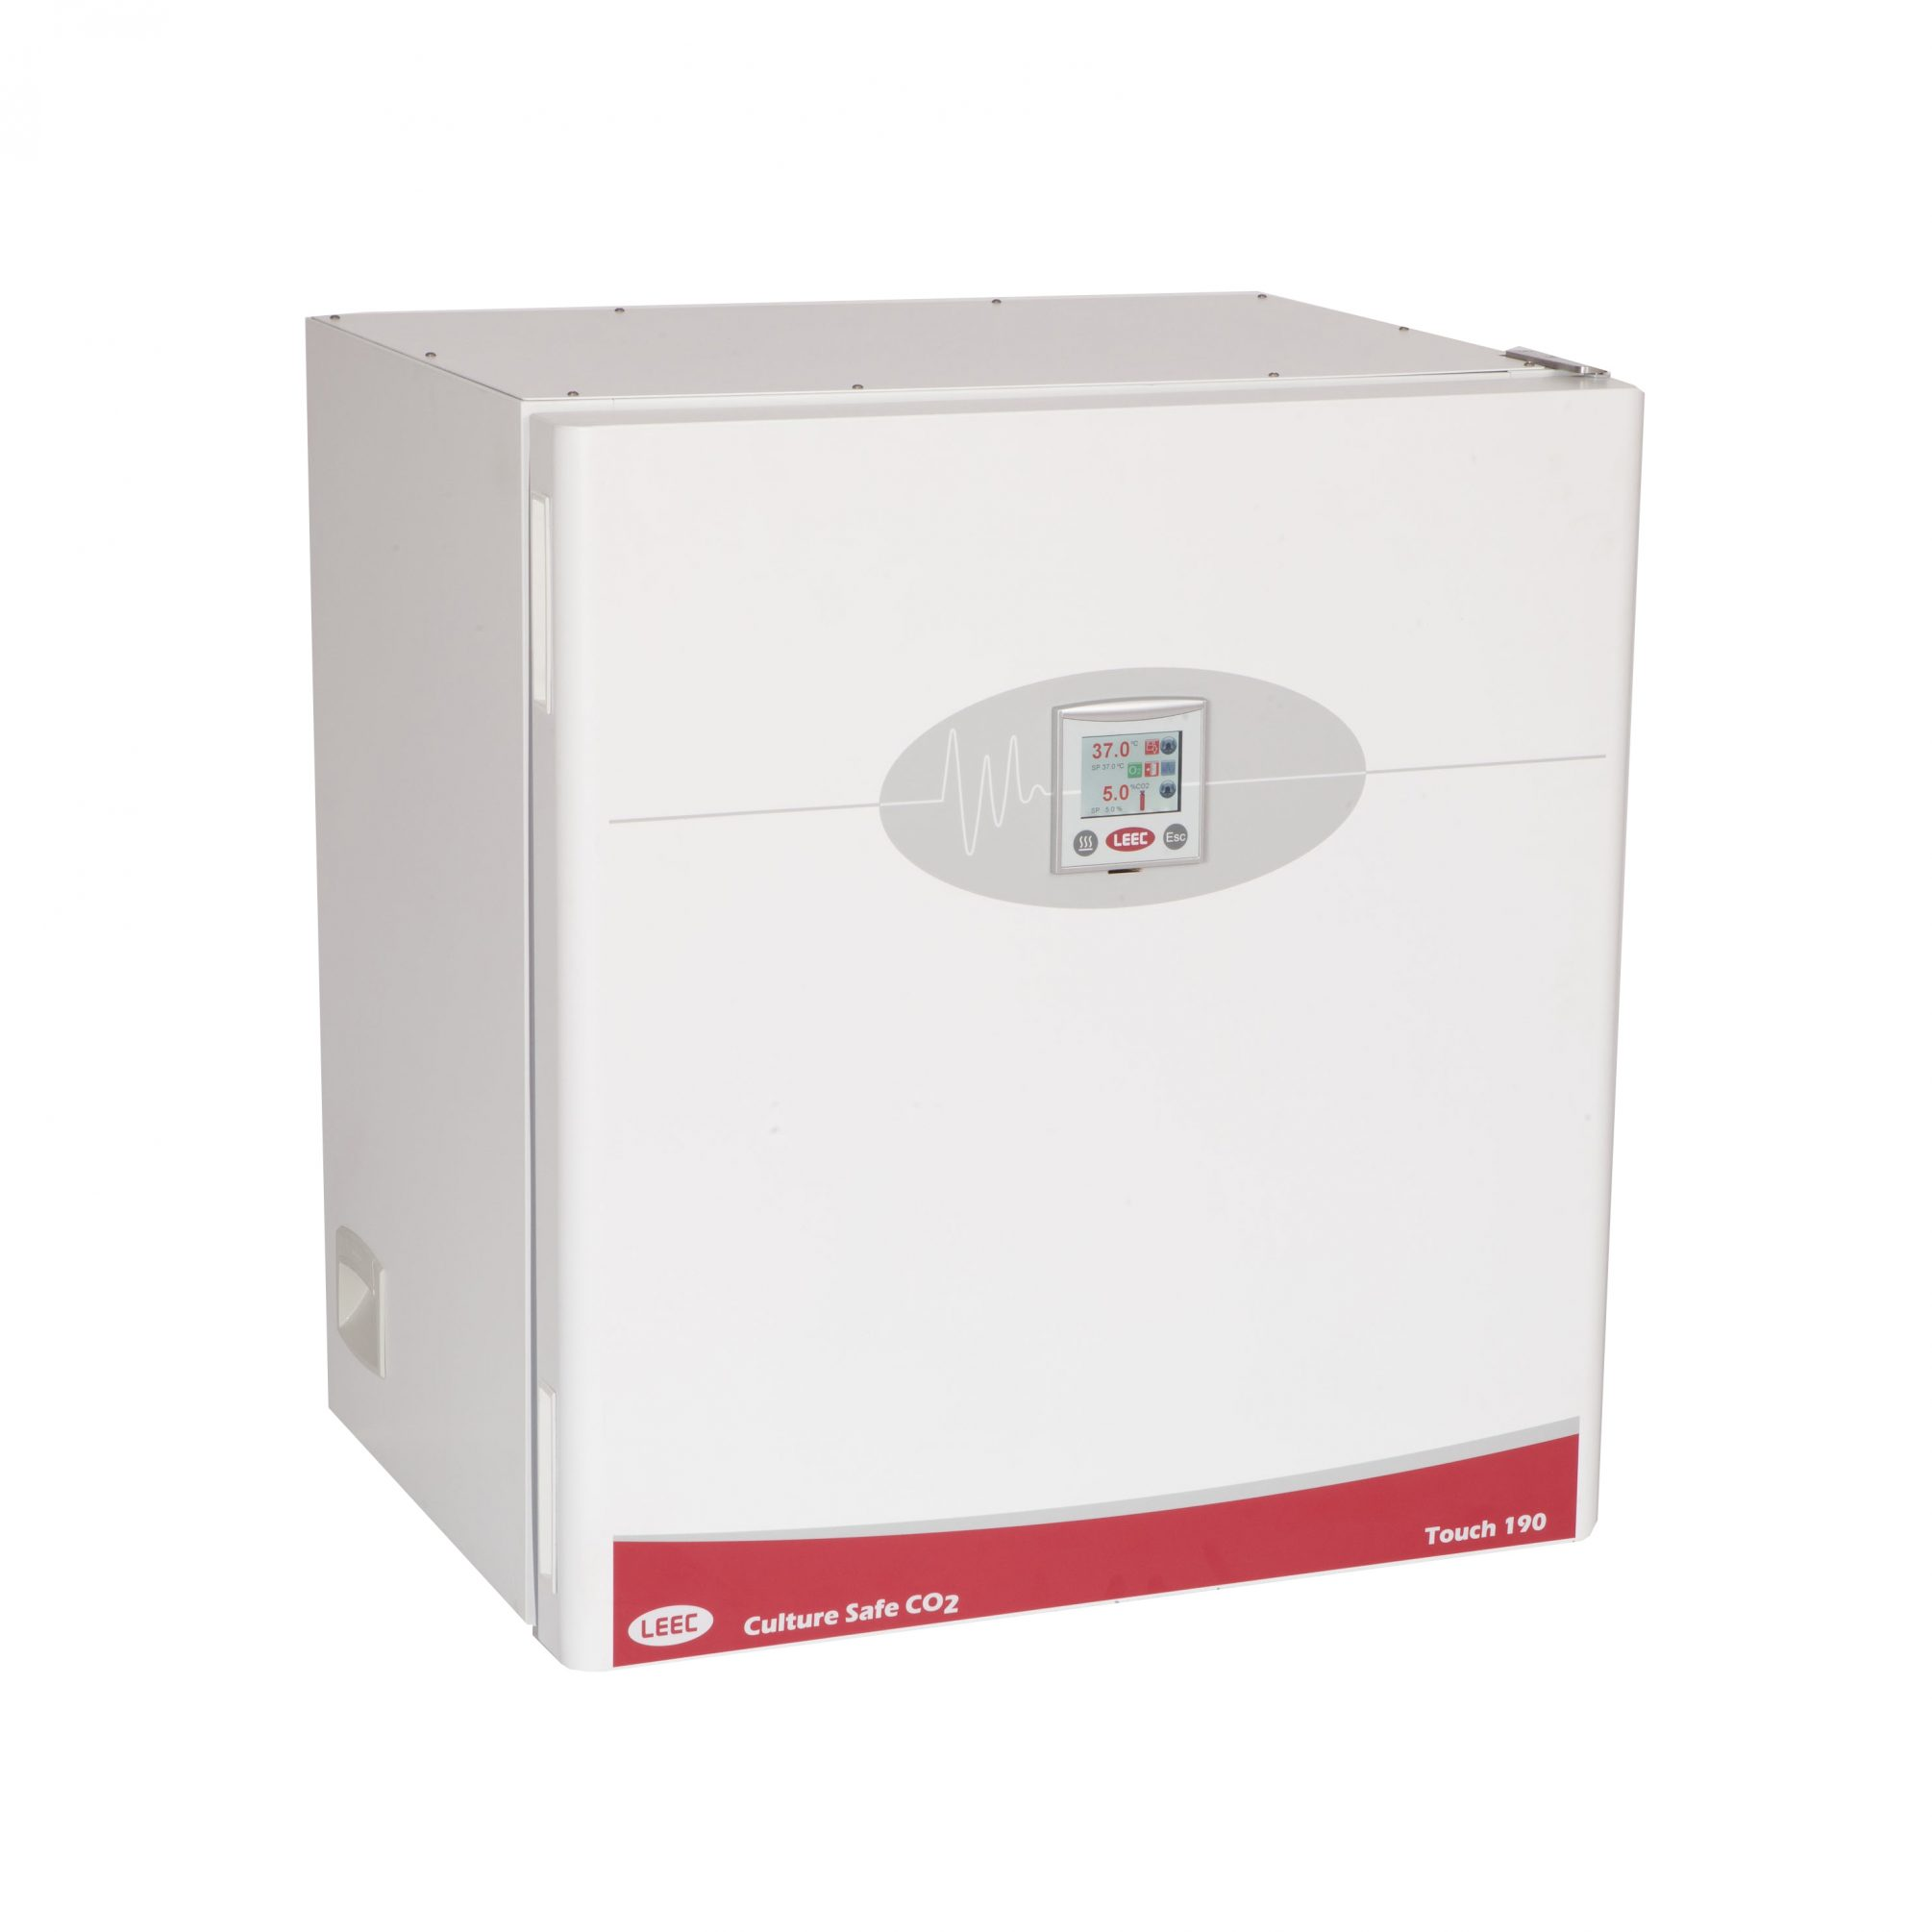 Touch 50S Culture Safe CO2 Incubator with dry sterilisation, 50L, LEEC